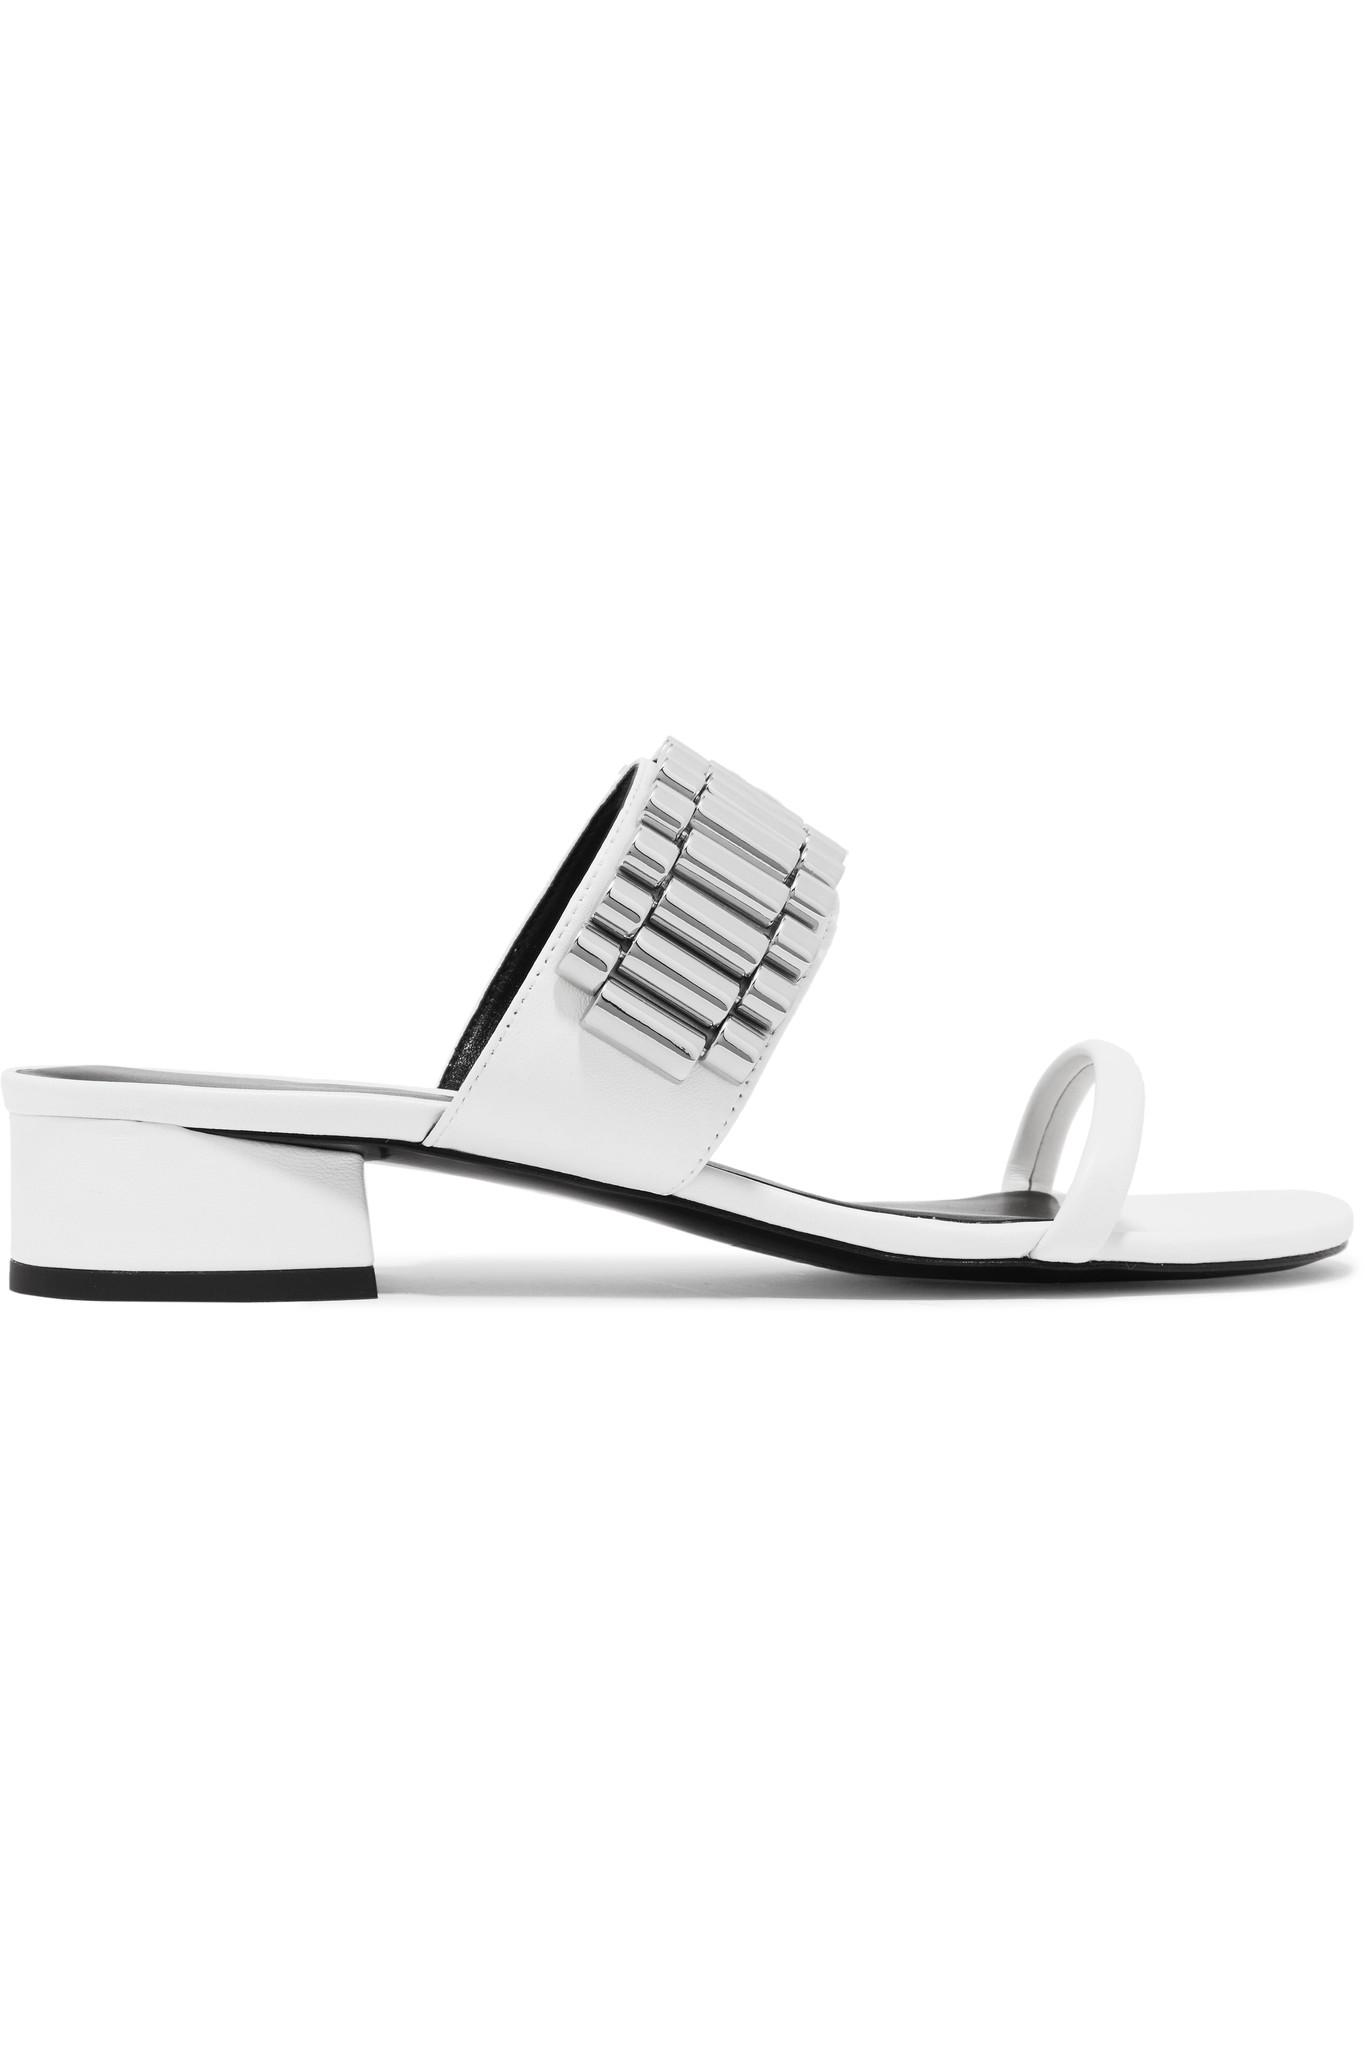 Drum Chain-embellished Leather Sandals - Black 3.1 Phillip Lim 81Ncux8yfO